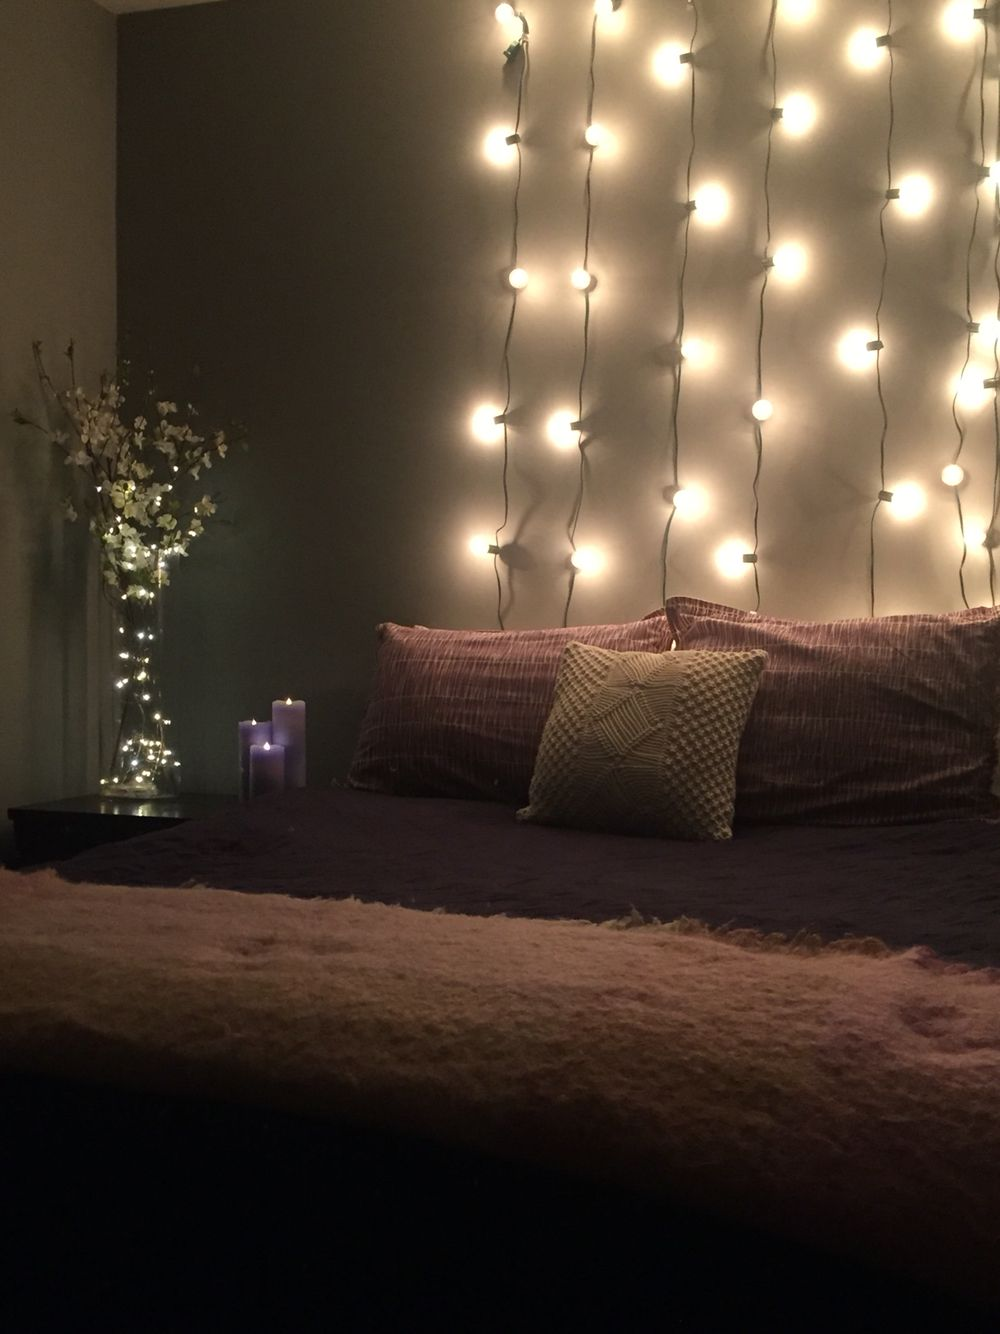 Simplux Lightscapes Craft Your Lightstyle String Lights Pixie - Light the bedroom candles